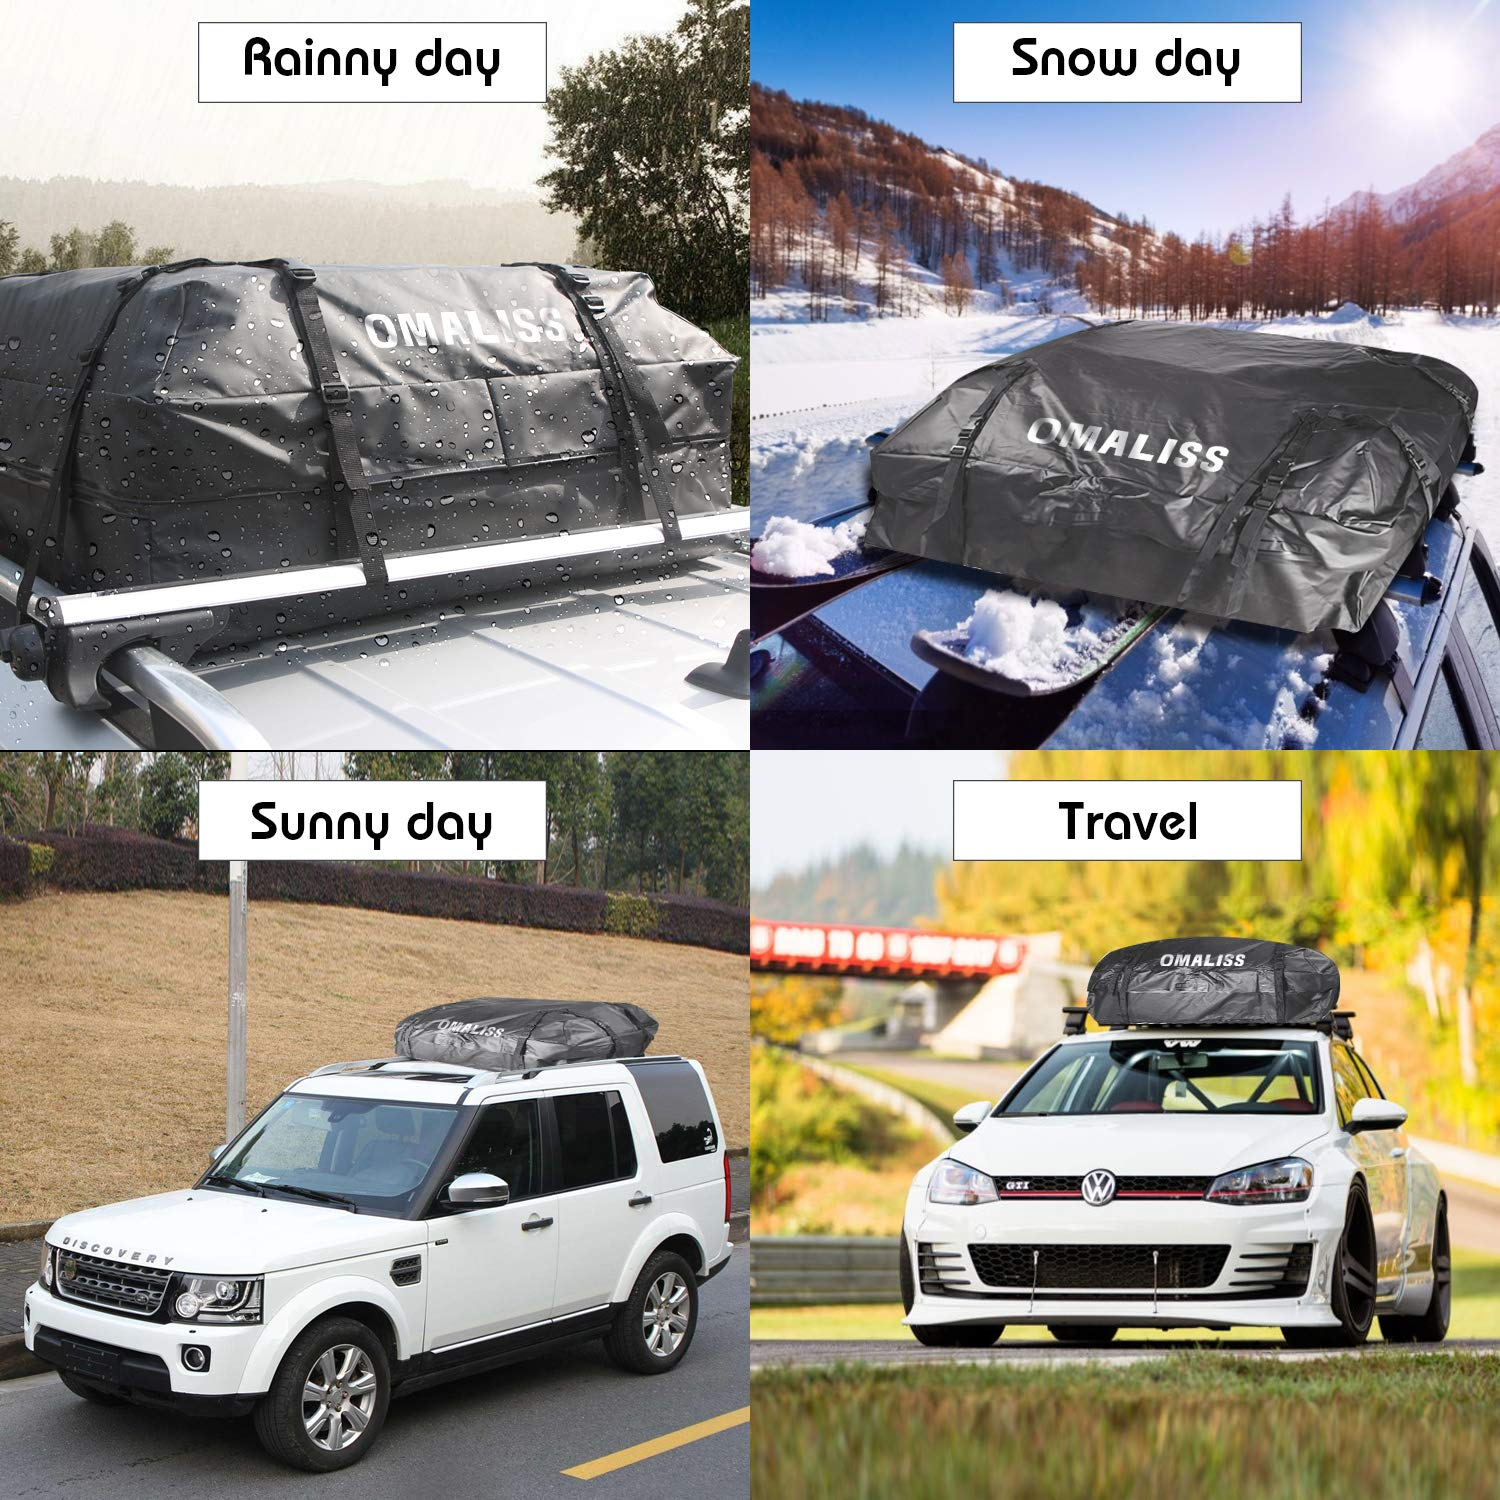 15 Cubic feet Cars Rack Travel Touring Omaliss Waterproof Car Roof Carrier Universal Soft Rooftop Bag Luggage Cargo Carriers Storage Box Sturdy Heavy Duty Straps Car Van SUV Racks